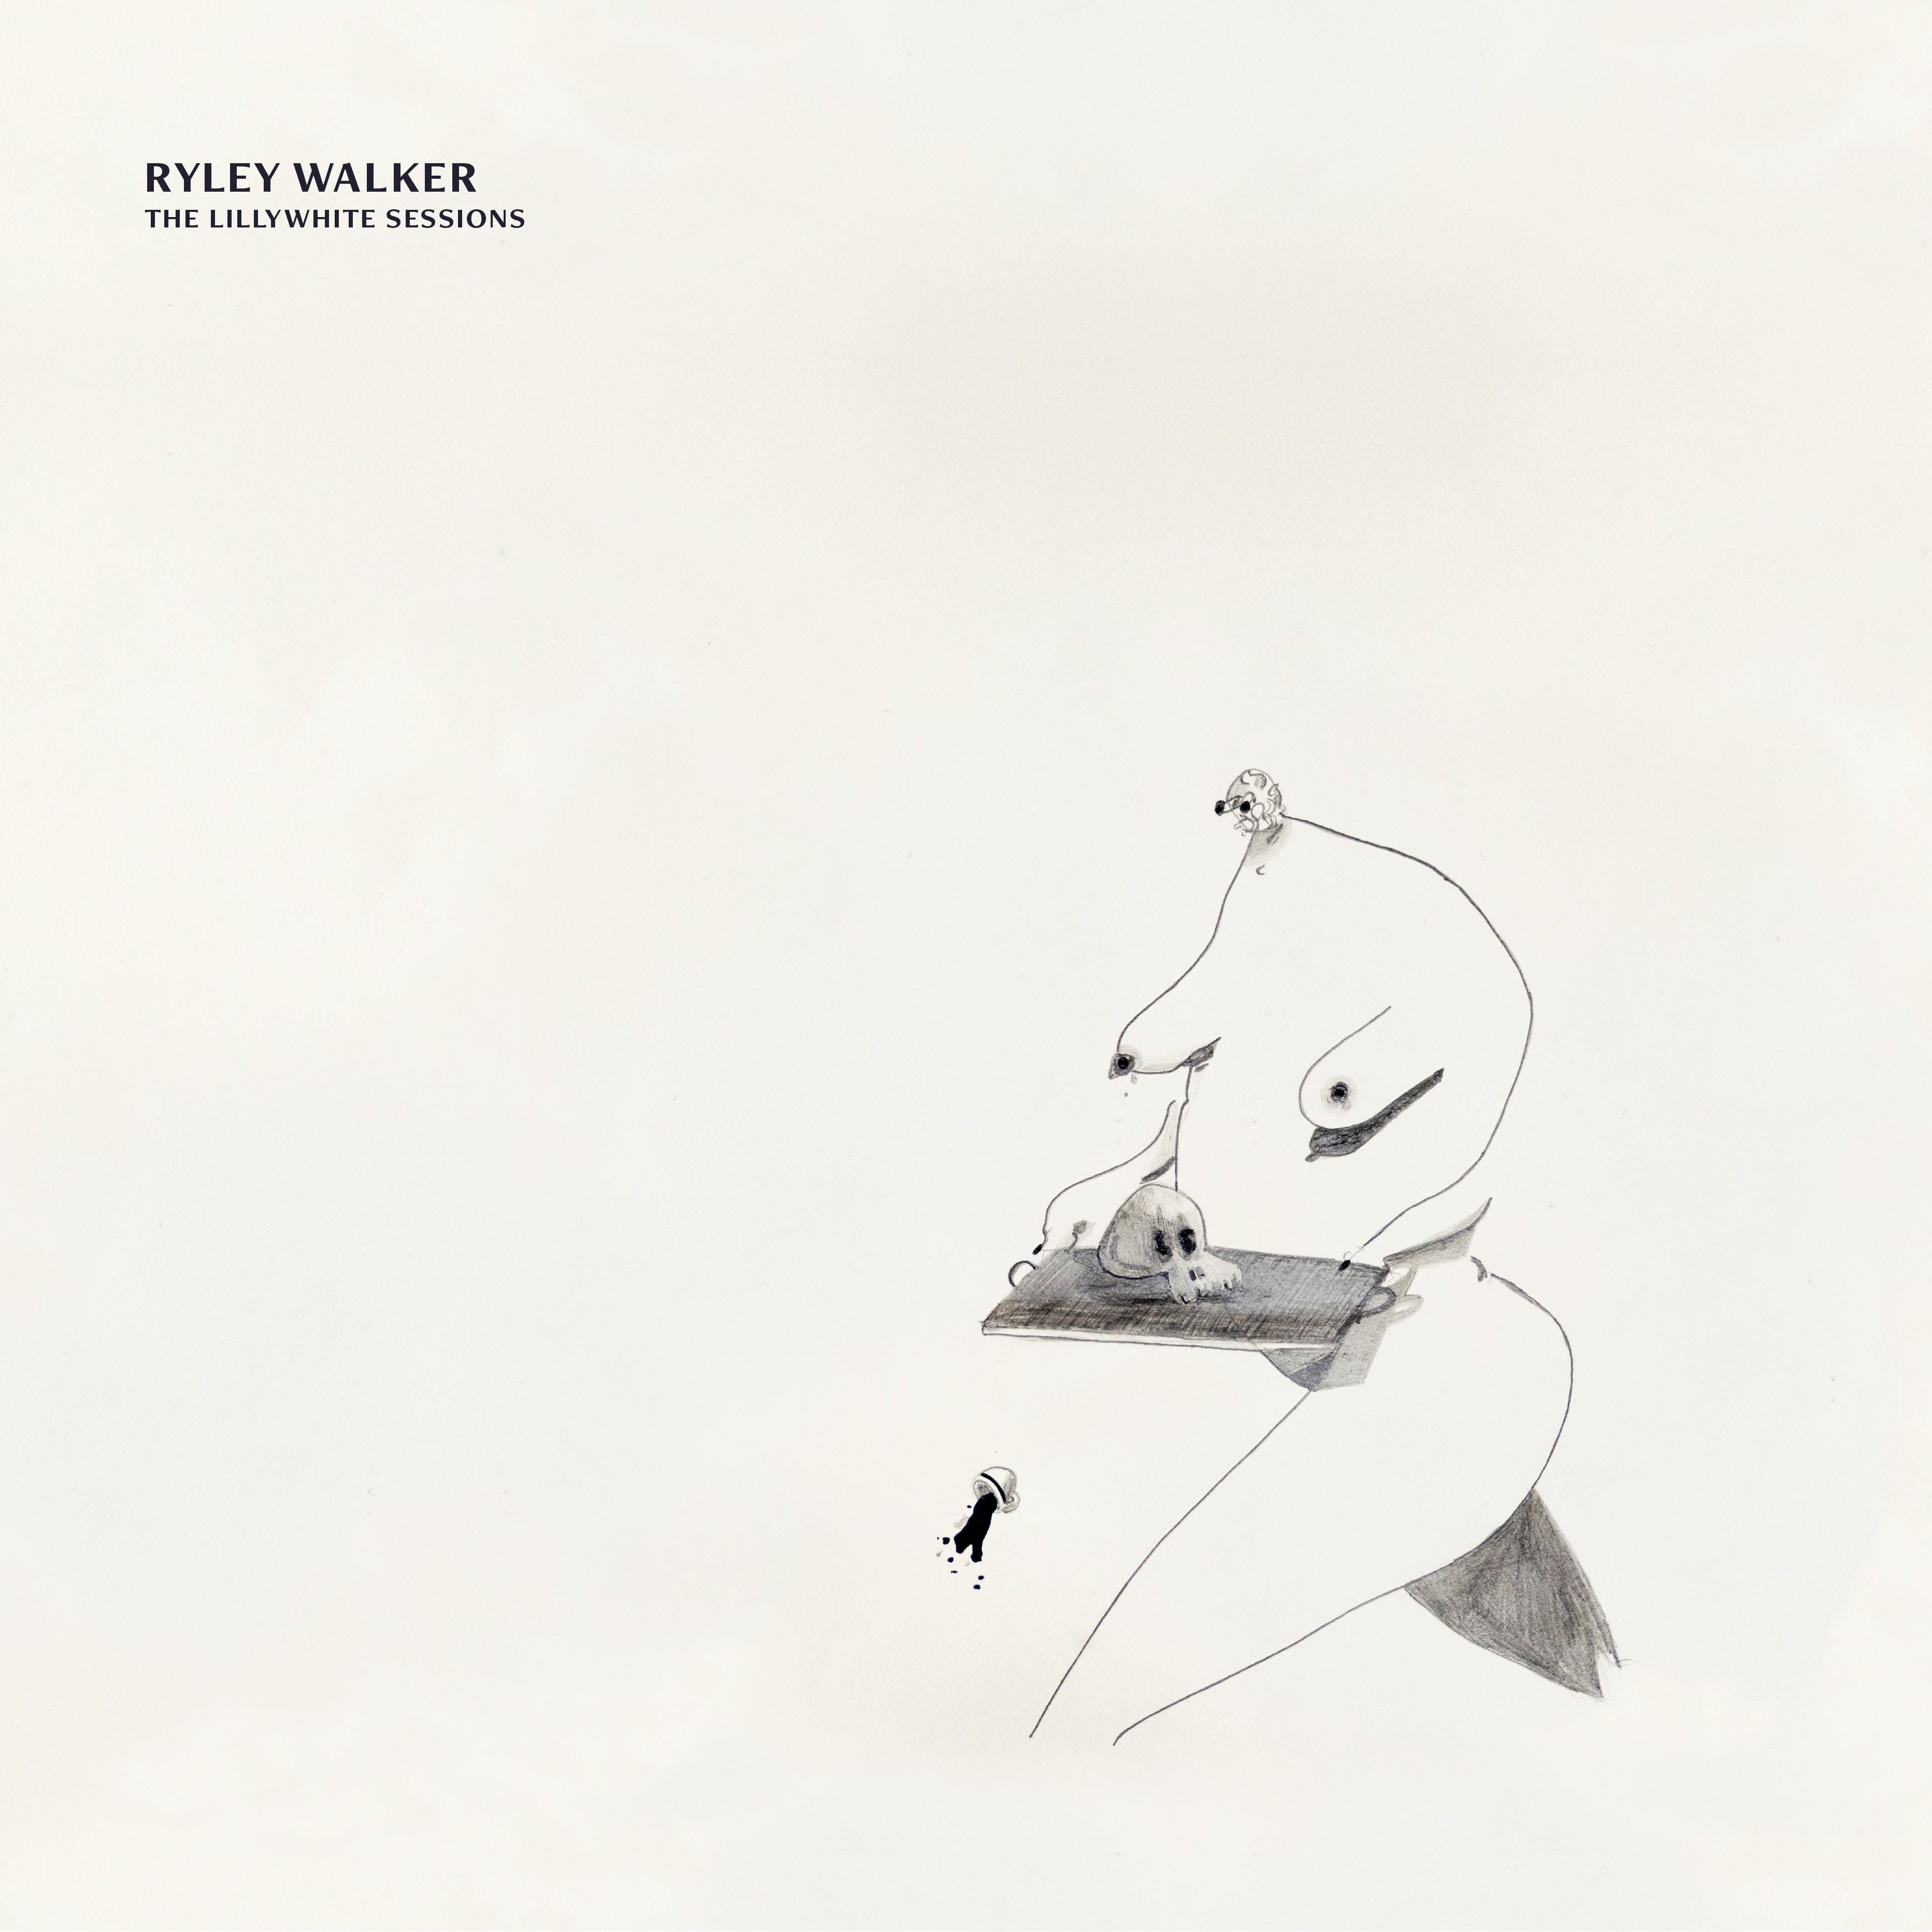 Ryley Walker The Lillywhite Sessions Album Cover Art Artwork Dave Matthews Band